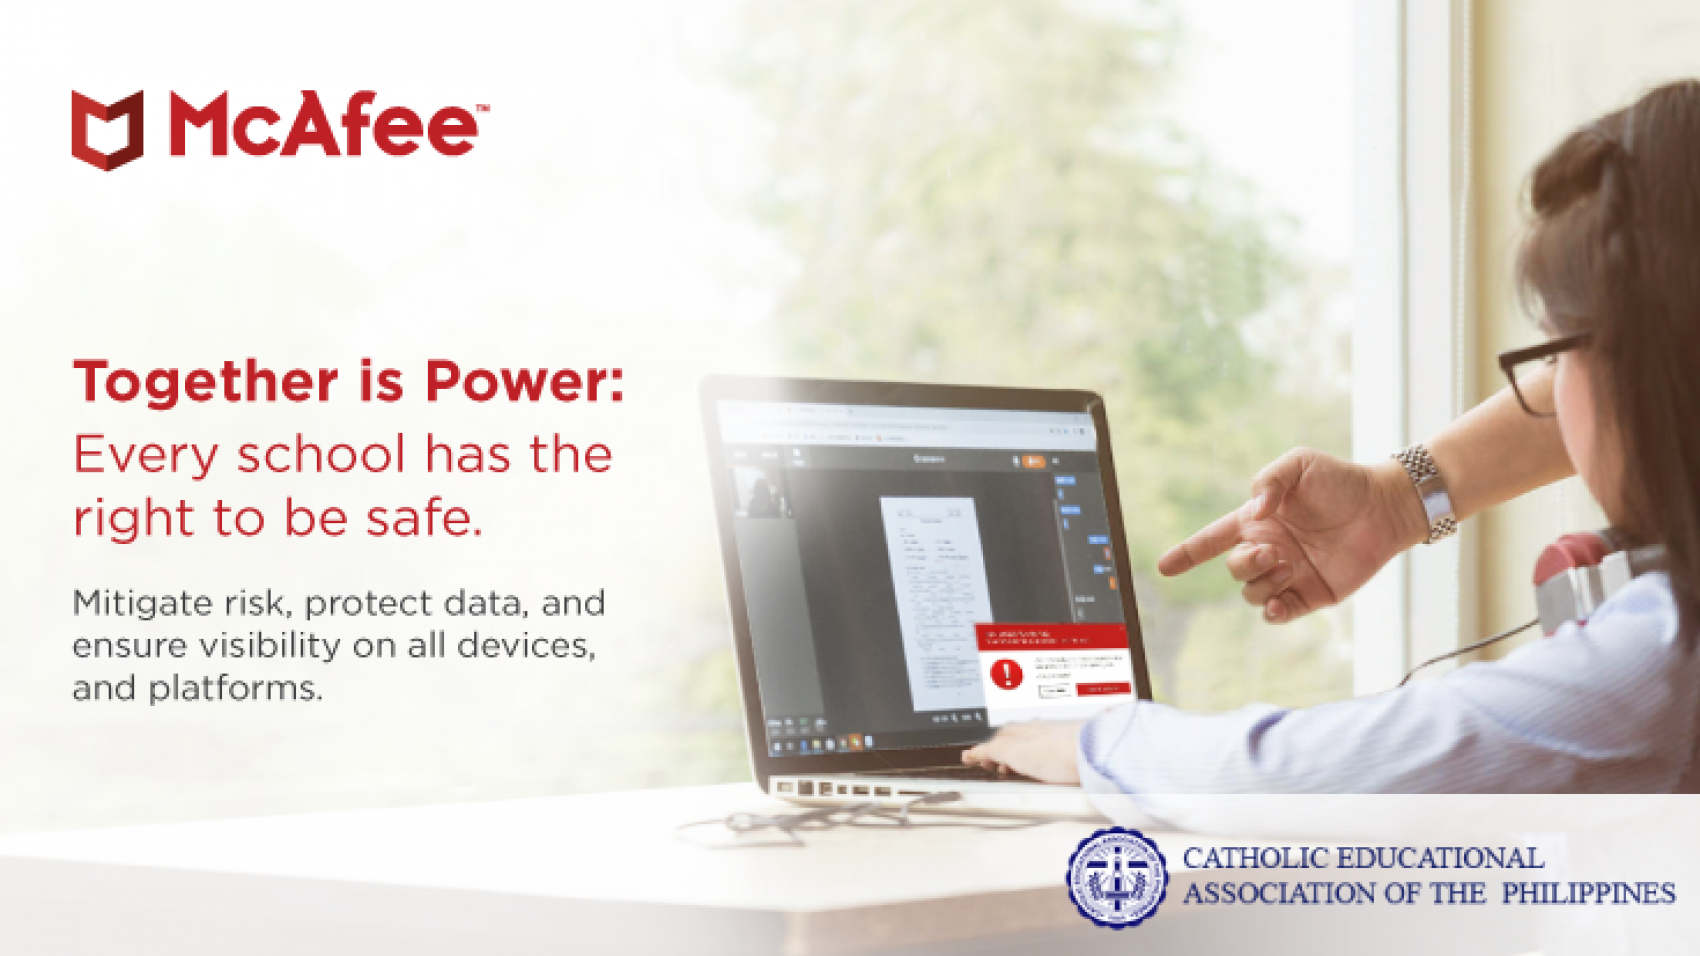 McAfee-Together-is-Power-Cybersecurity-Program-for-Schools-Nov-20-(Hero-Image)